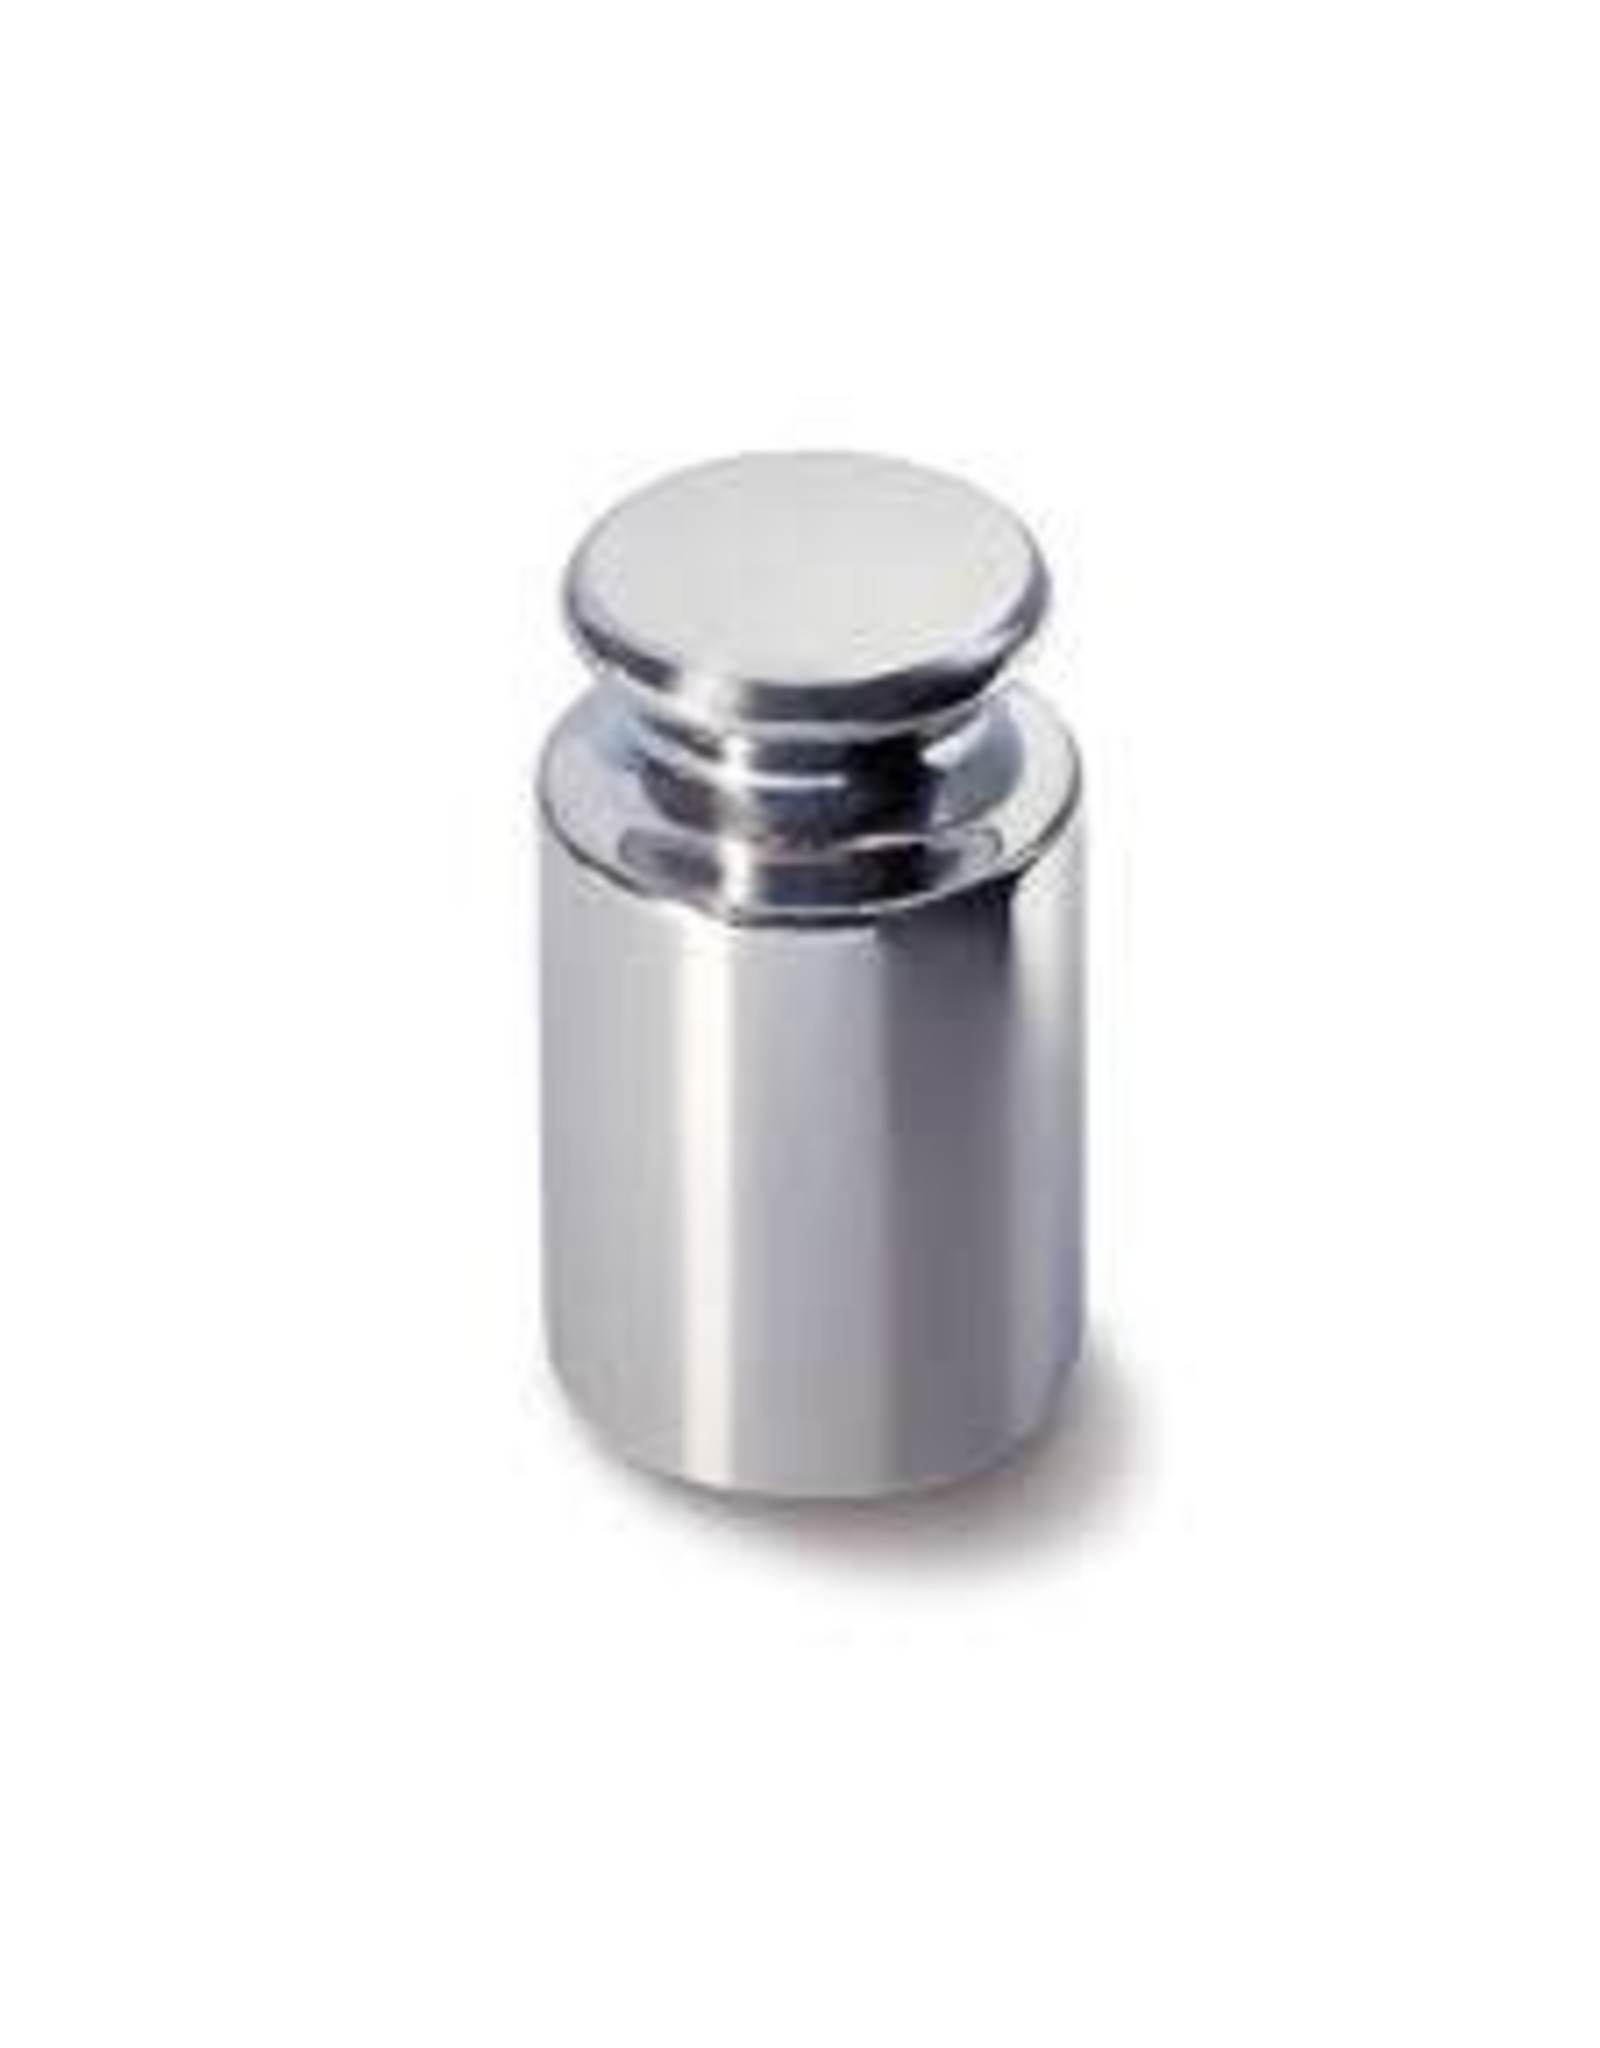 Truweight Calibration Weight - 1g